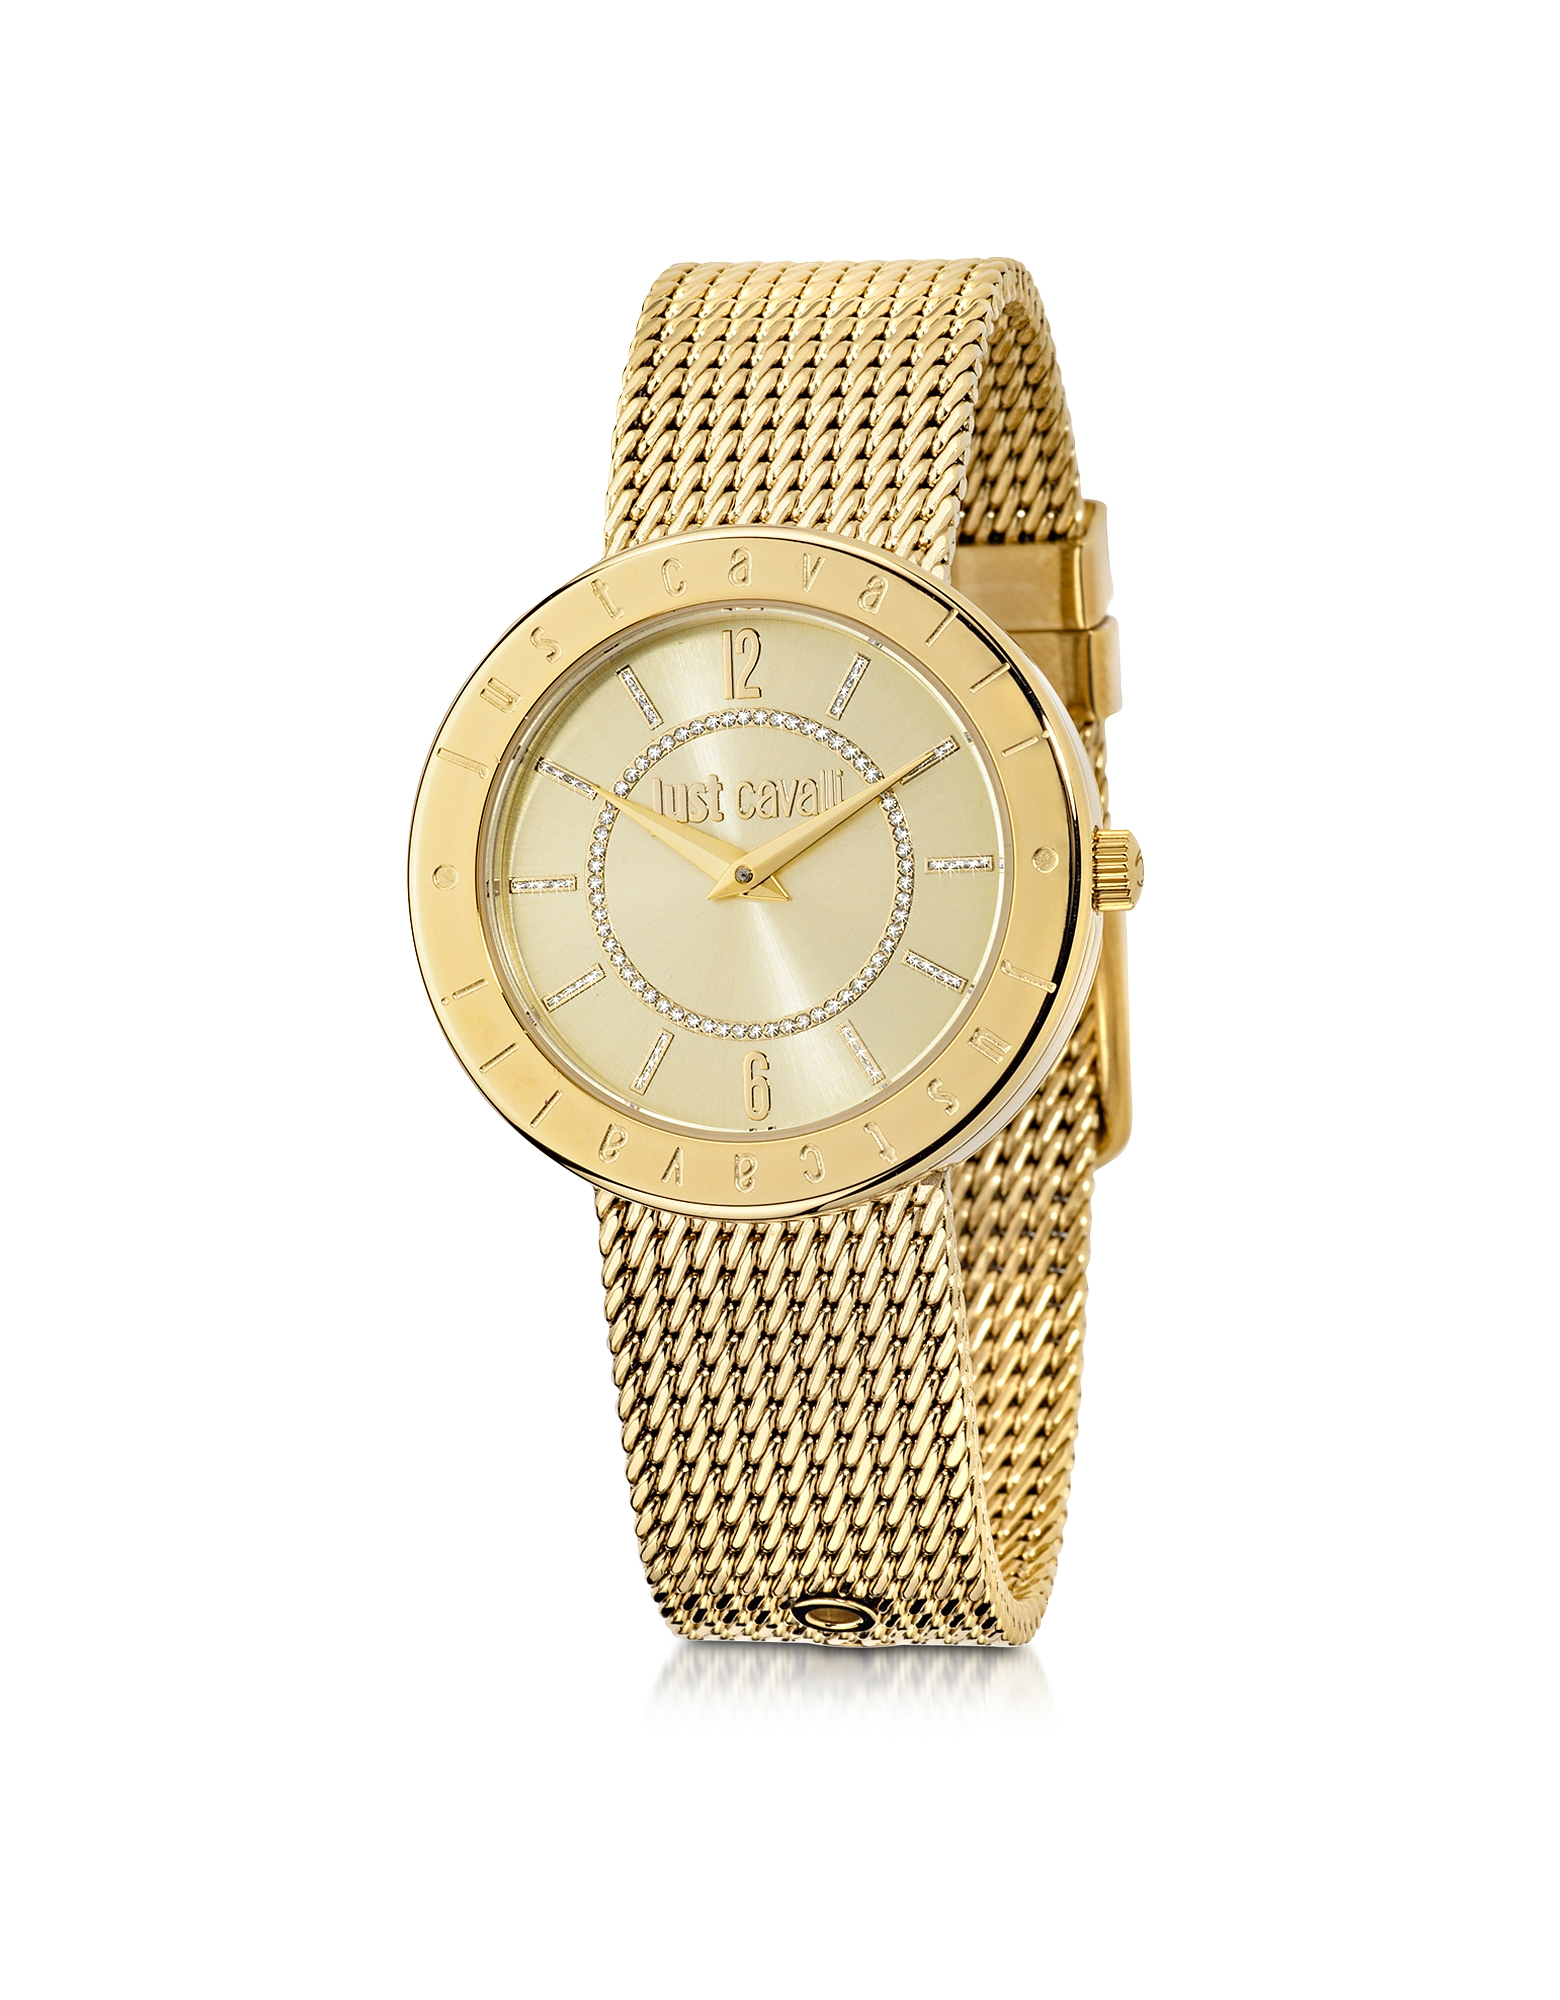 Just Cavalli Women's Watches, Just Shiny Stainless Steel Women's Watch